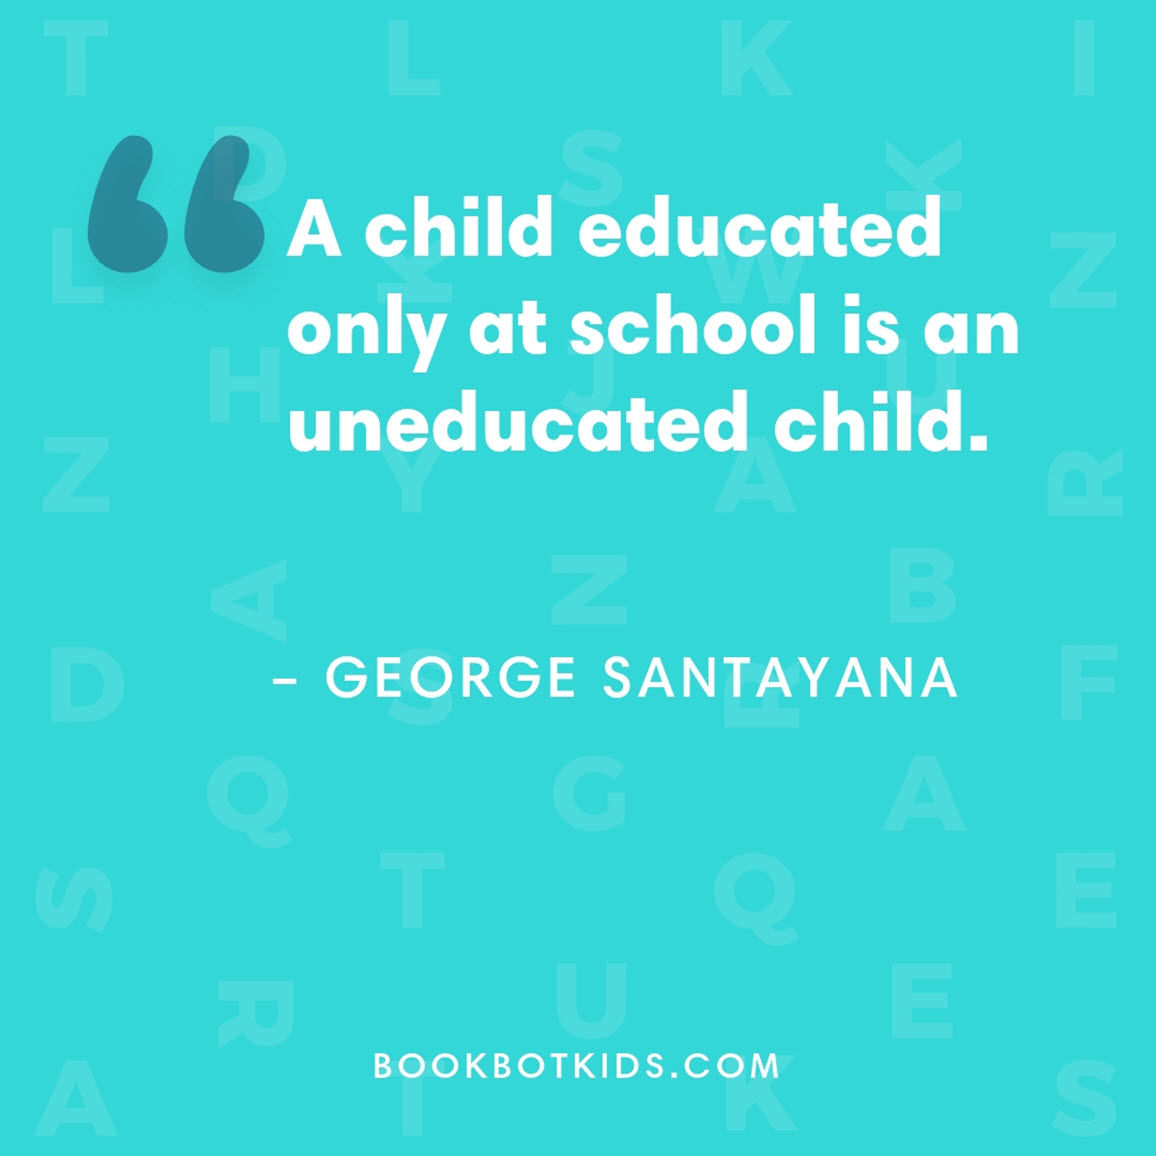 A child educated only at school is an uneducated child. – George Santayana